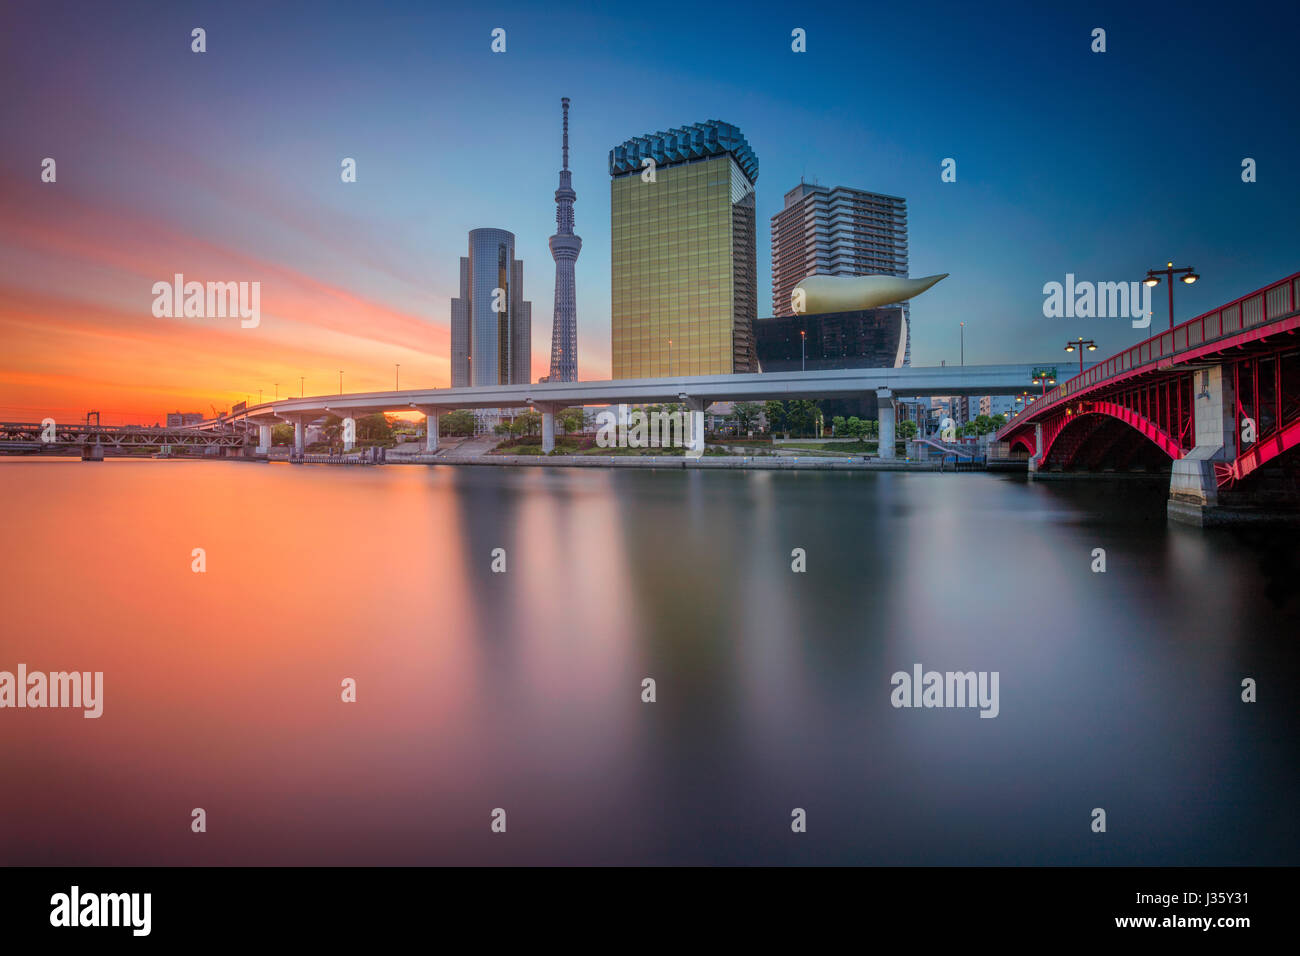 Tokyo. Cityscape image of Tokyo skyline during sunrise in Japan. - Stock Image